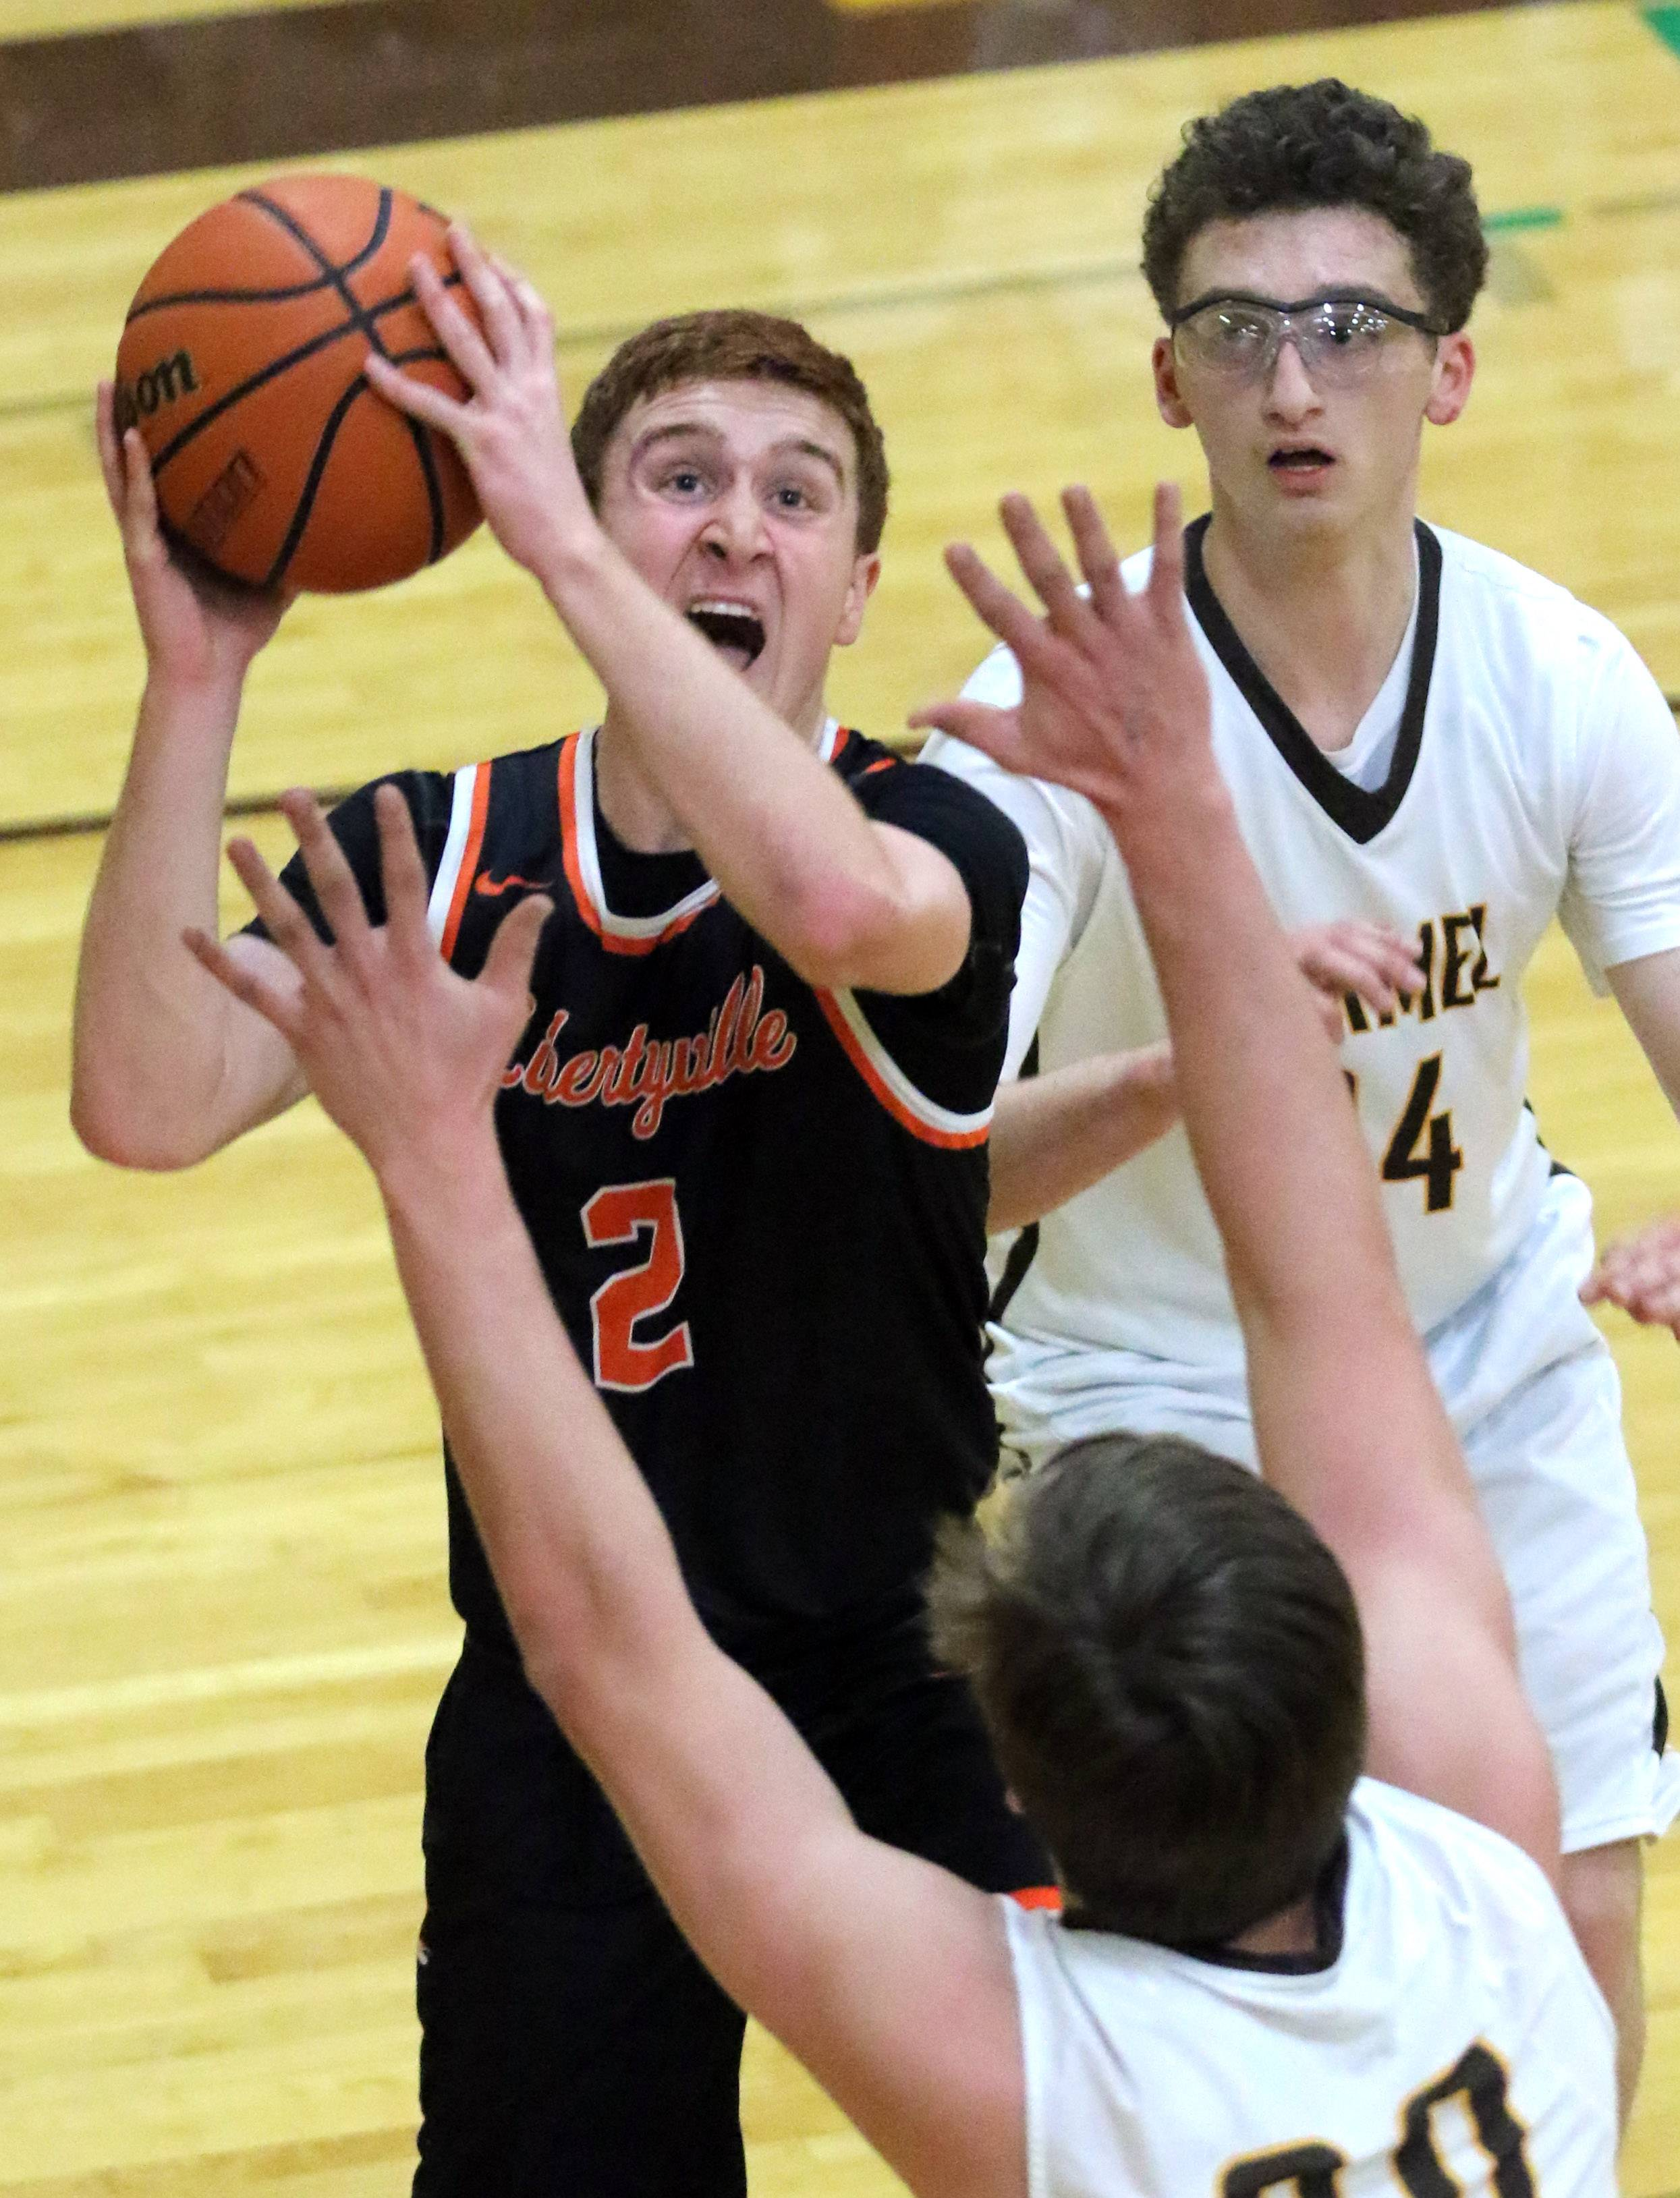 Libertyville's Ryan Wittenbrink, left, drives on Carmel's Jonathan Roeser and Lukas Galdoni on Tuesday night in Mundelein.